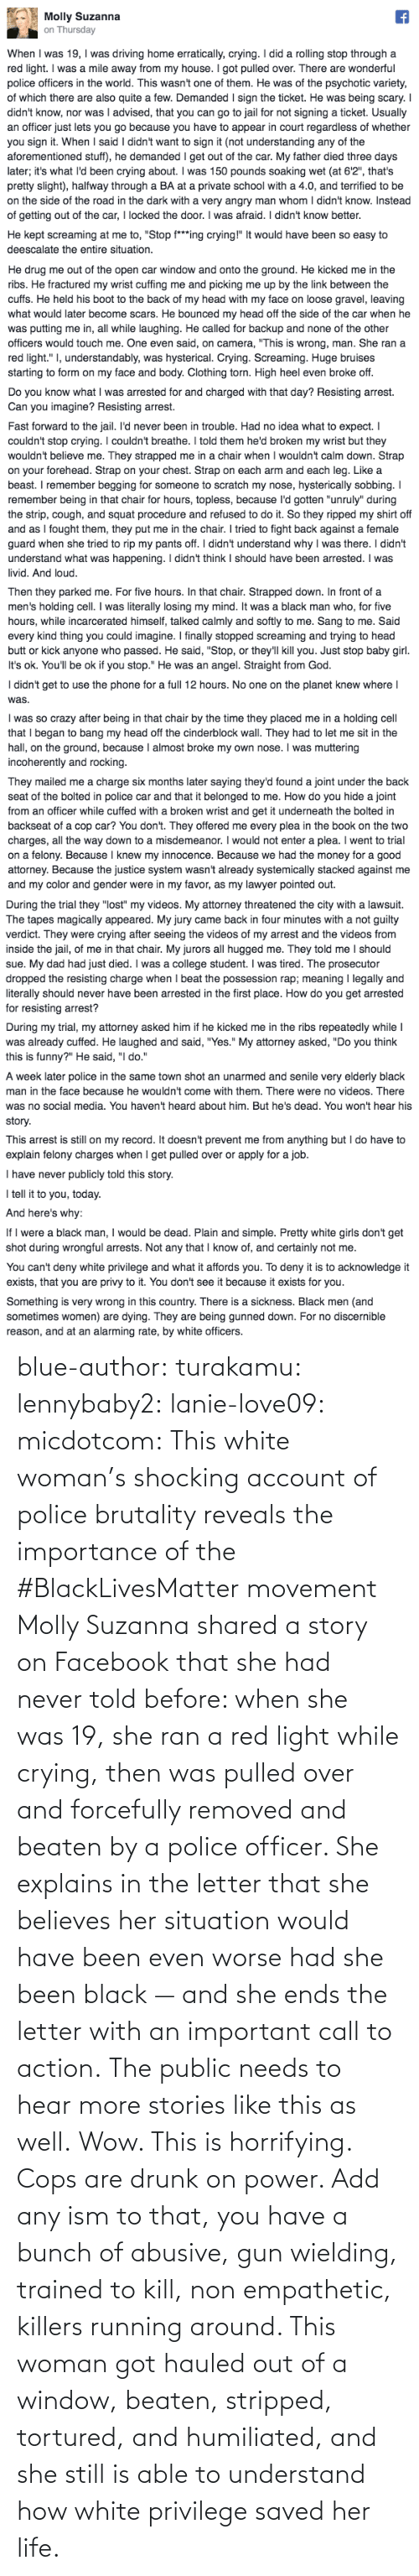 saved: blue-author: turakamu:  lennybaby2:  lanie-love09:  micdotcom:  This white woman's shocking account of police brutality reveals the importance of the #BlackLivesMatter movement Molly Suzanna shared a story on Facebook that she had never told before: when she was 19, she ran a red light while crying, then was pulled over and forcefully removed and beaten by a police officer. She explains in the letter that she believes her situation would have been even worse had she been black — and she ends the letter with an important call to action.  The public needs to hear more stories like this as well.  Wow. This is horrifying.  Cops are drunk on power. Add any ism to that, you have a bunch of abusive, gun wielding, trained to kill, non empathetic, killers running around.    This woman got hauled out of a window, beaten, stripped, tortured, and humiliated, and she still is able to understand how white privilege saved her life.